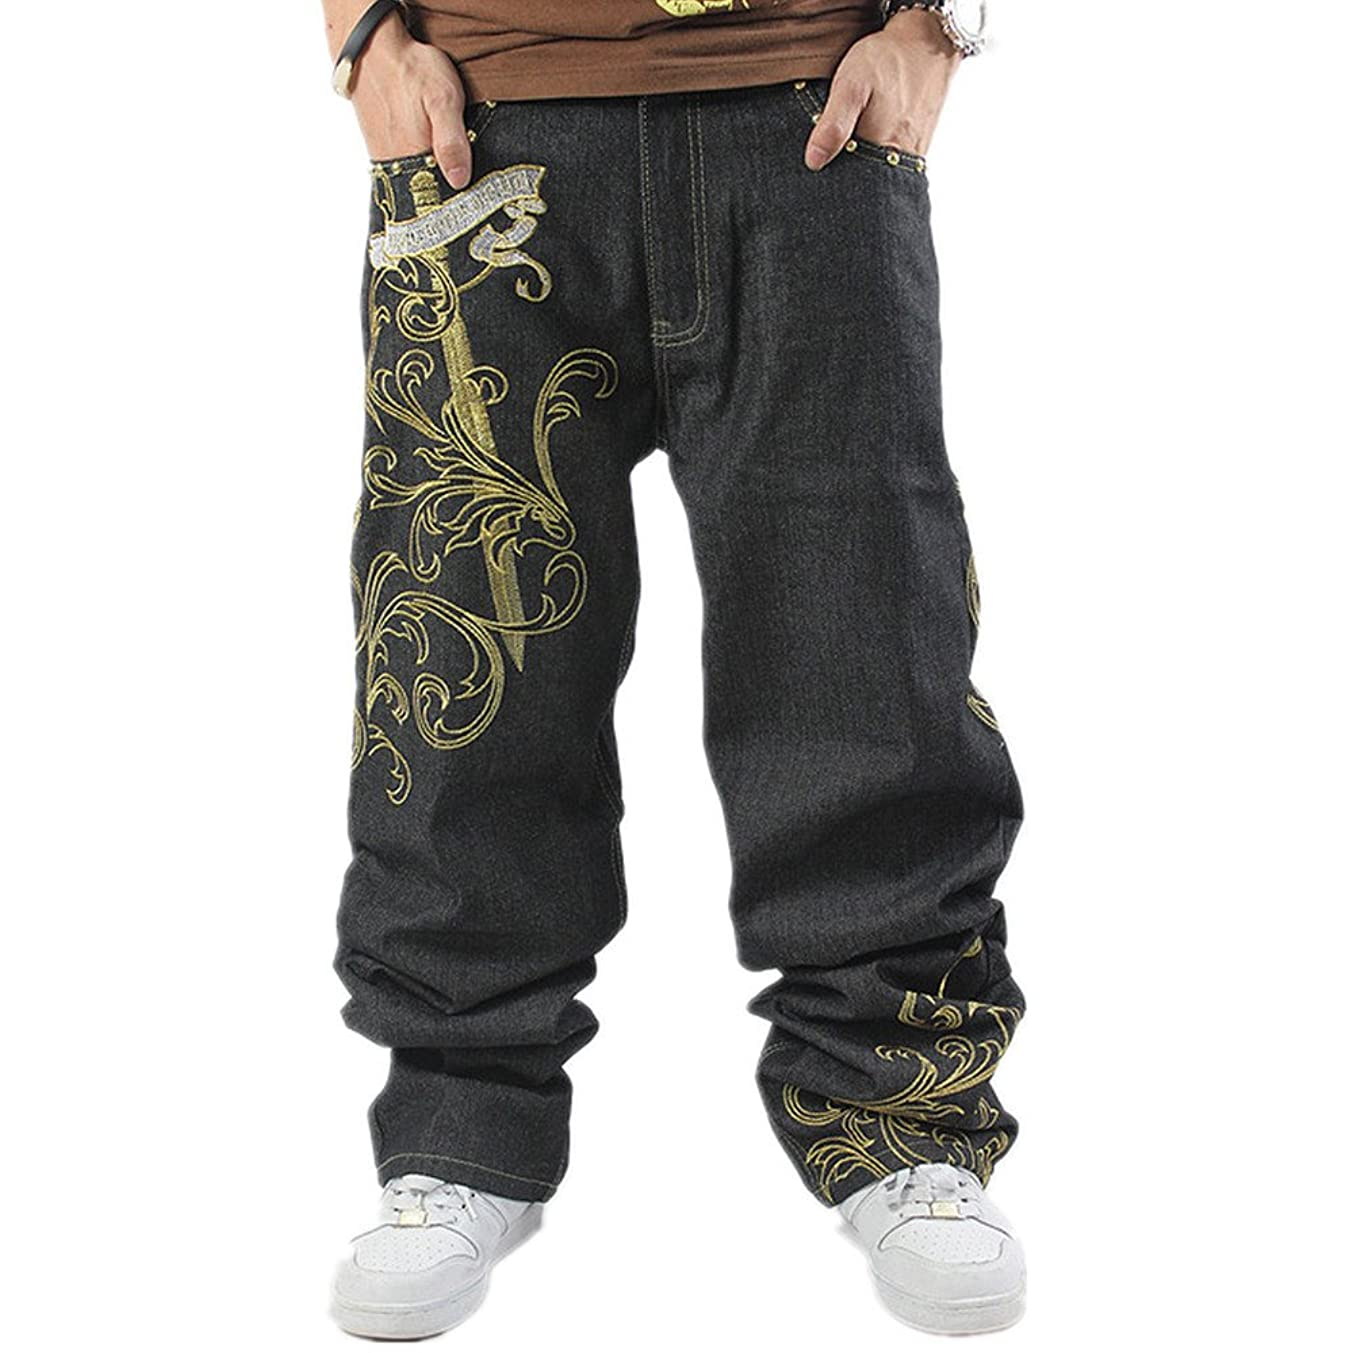 Ruiatoo Men's Fashion Embroidery Print Hip Hop Loose Jeans Baggy Jeans Black